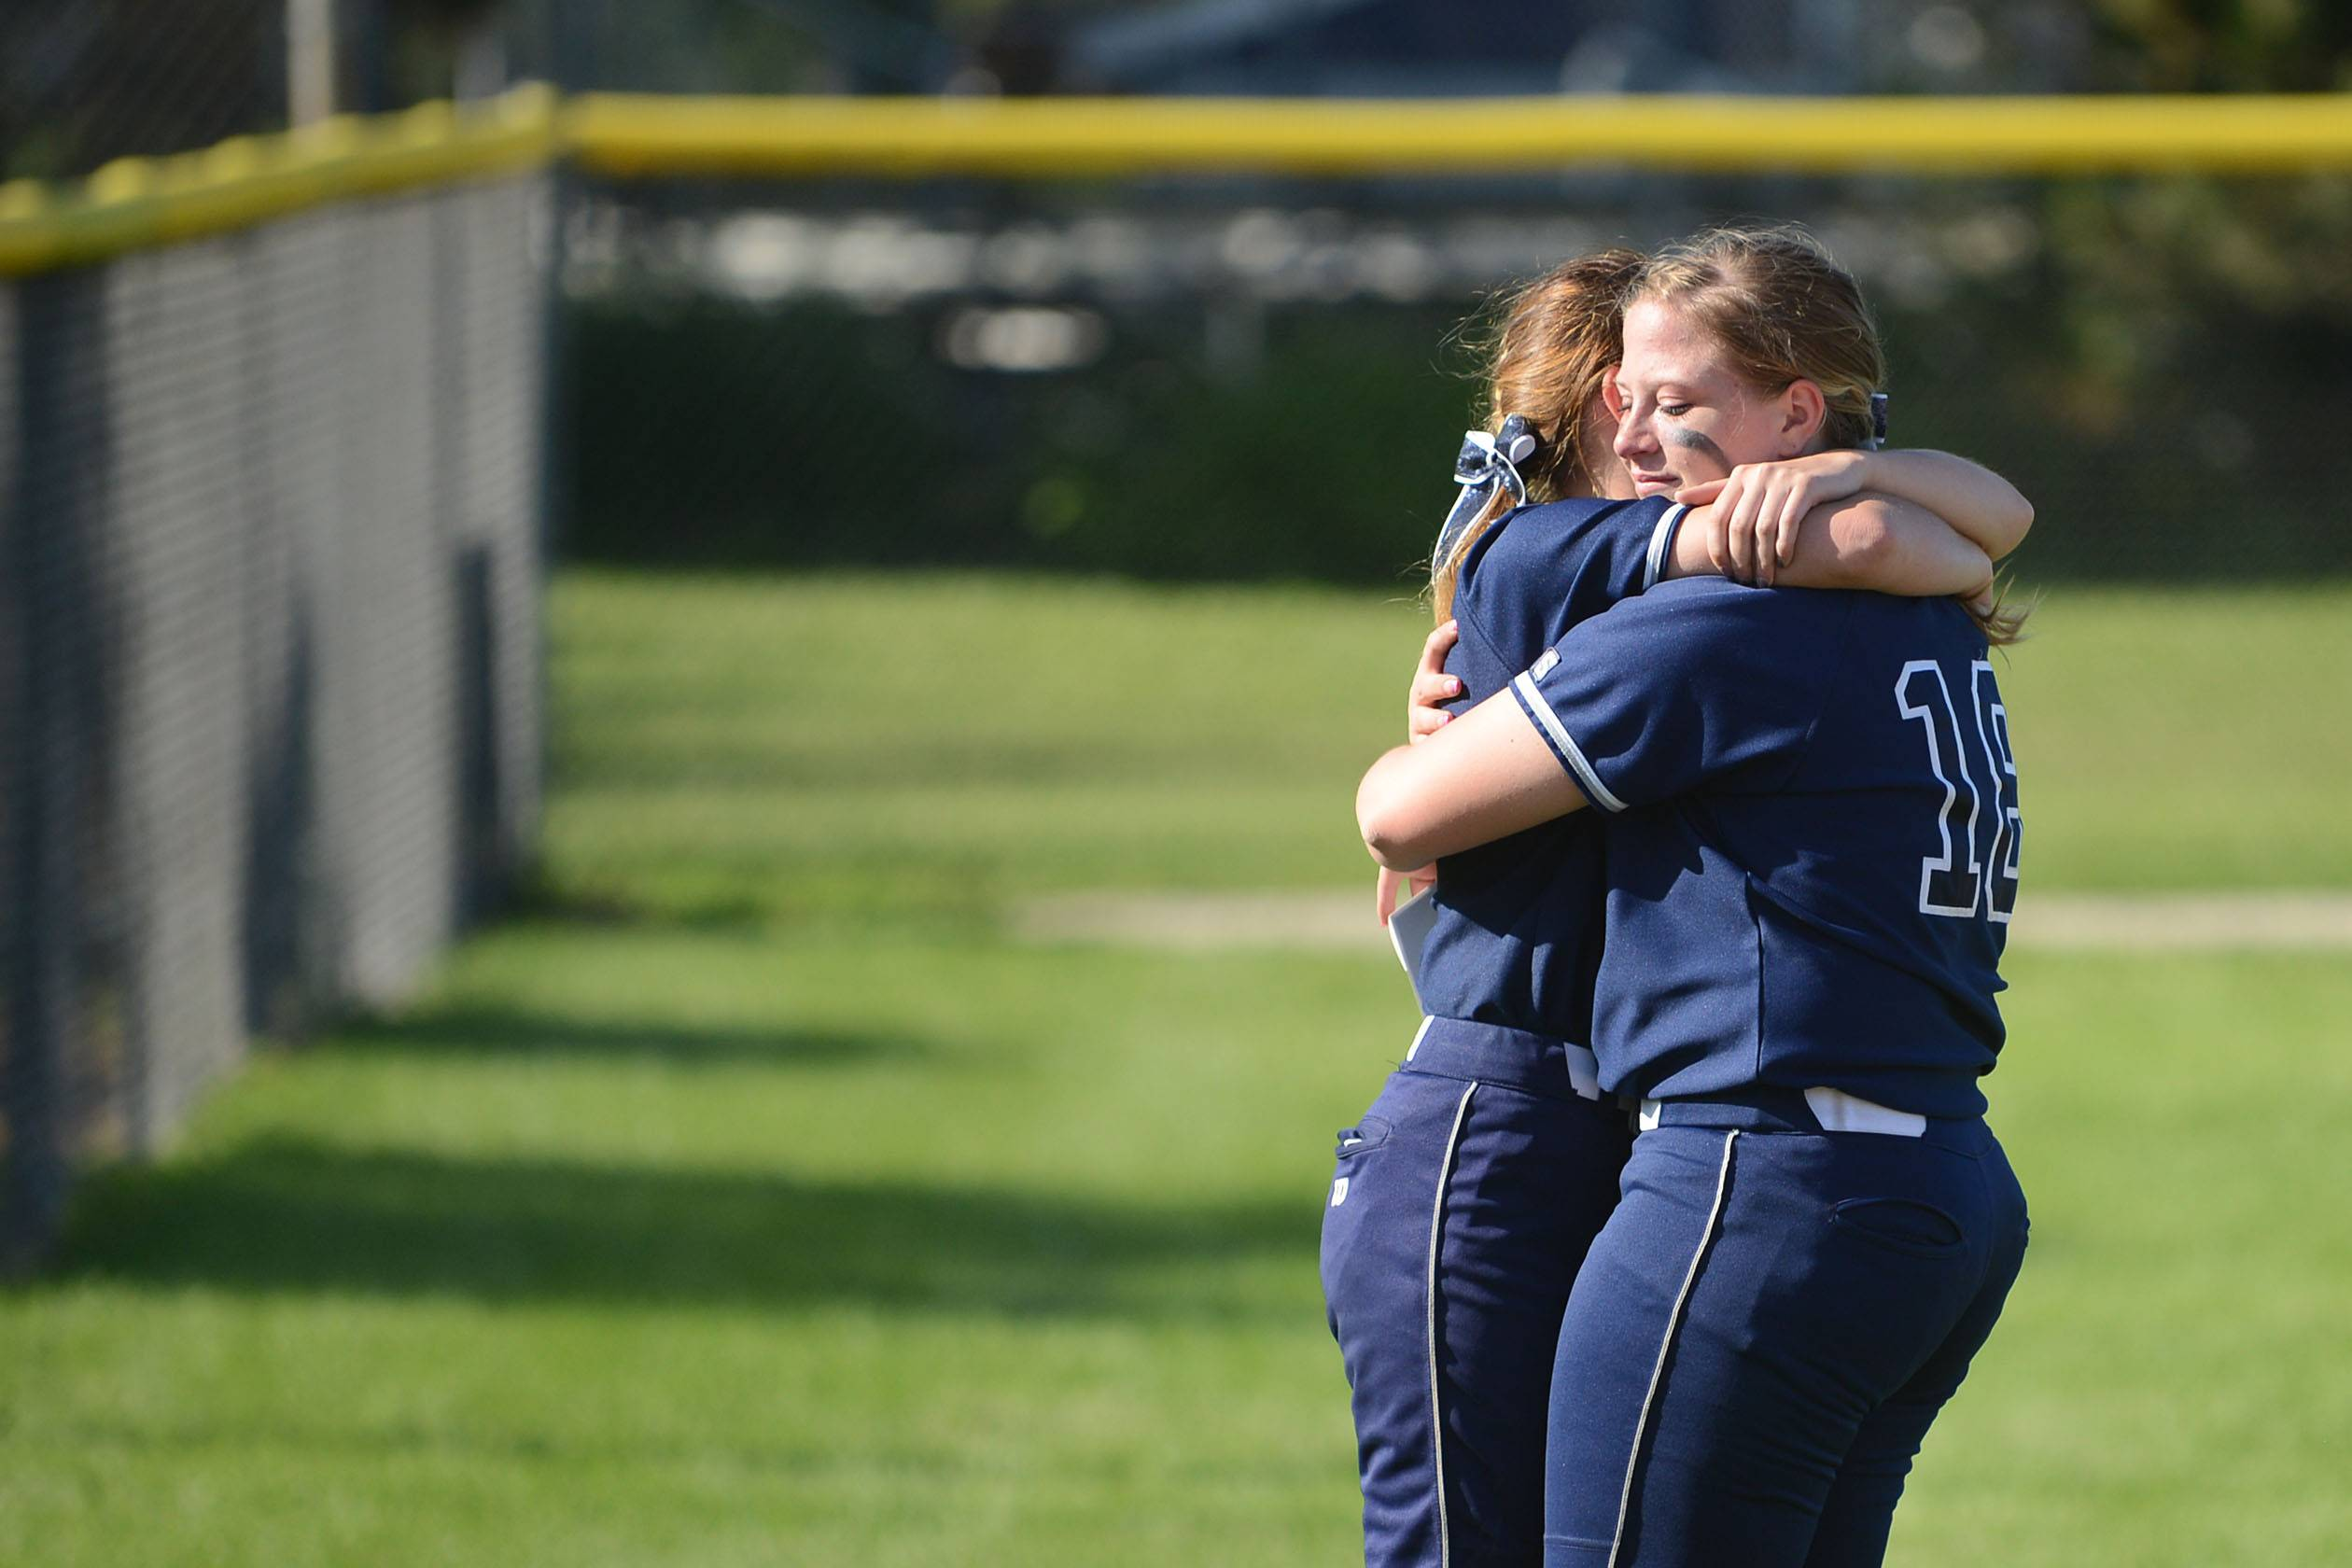 Cary-Grove's Colleen Kaveney, left, gives a comforting hug to a teary-eyed Caroline Zasadil after their 10-0 loss to Barrington in the Class 4A girls softball regional championship in Cary on Friday, May 30.